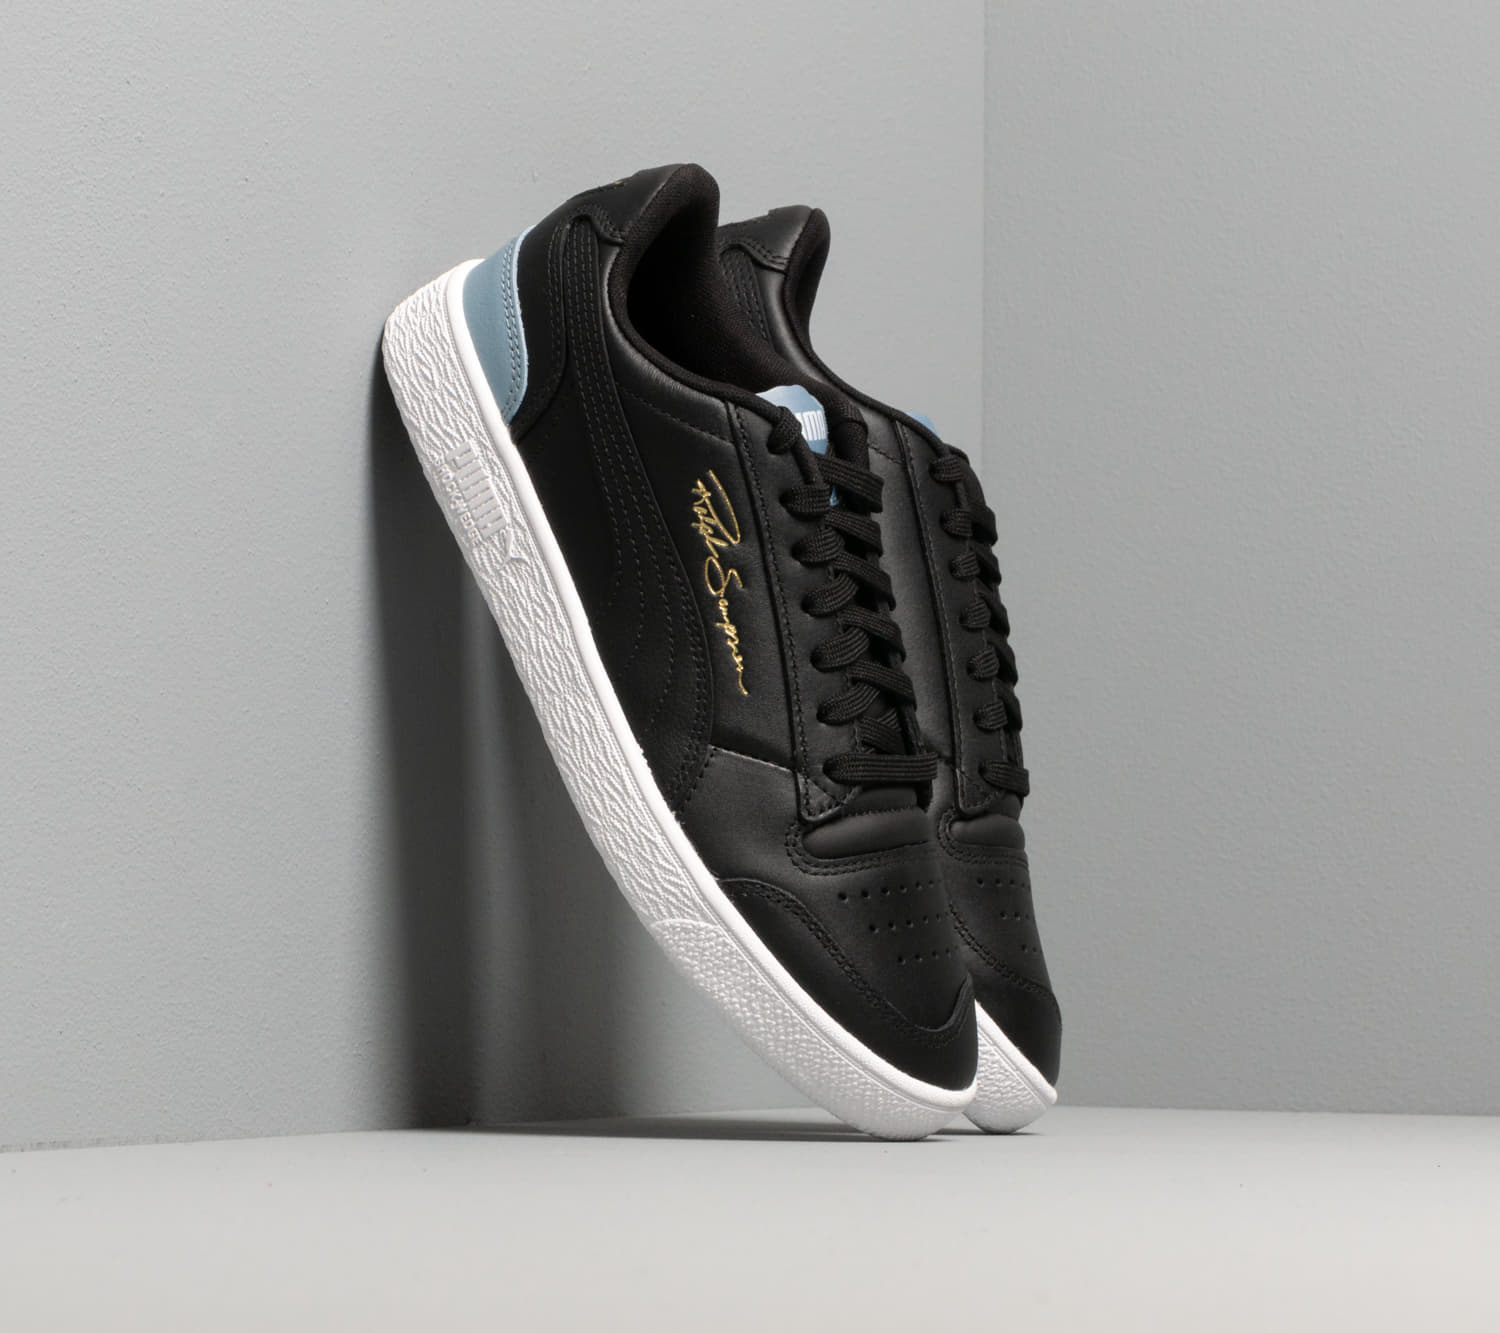 Puma Ralph Sampson LOW Puma Black-Puma Black-Faded Denim 37084605